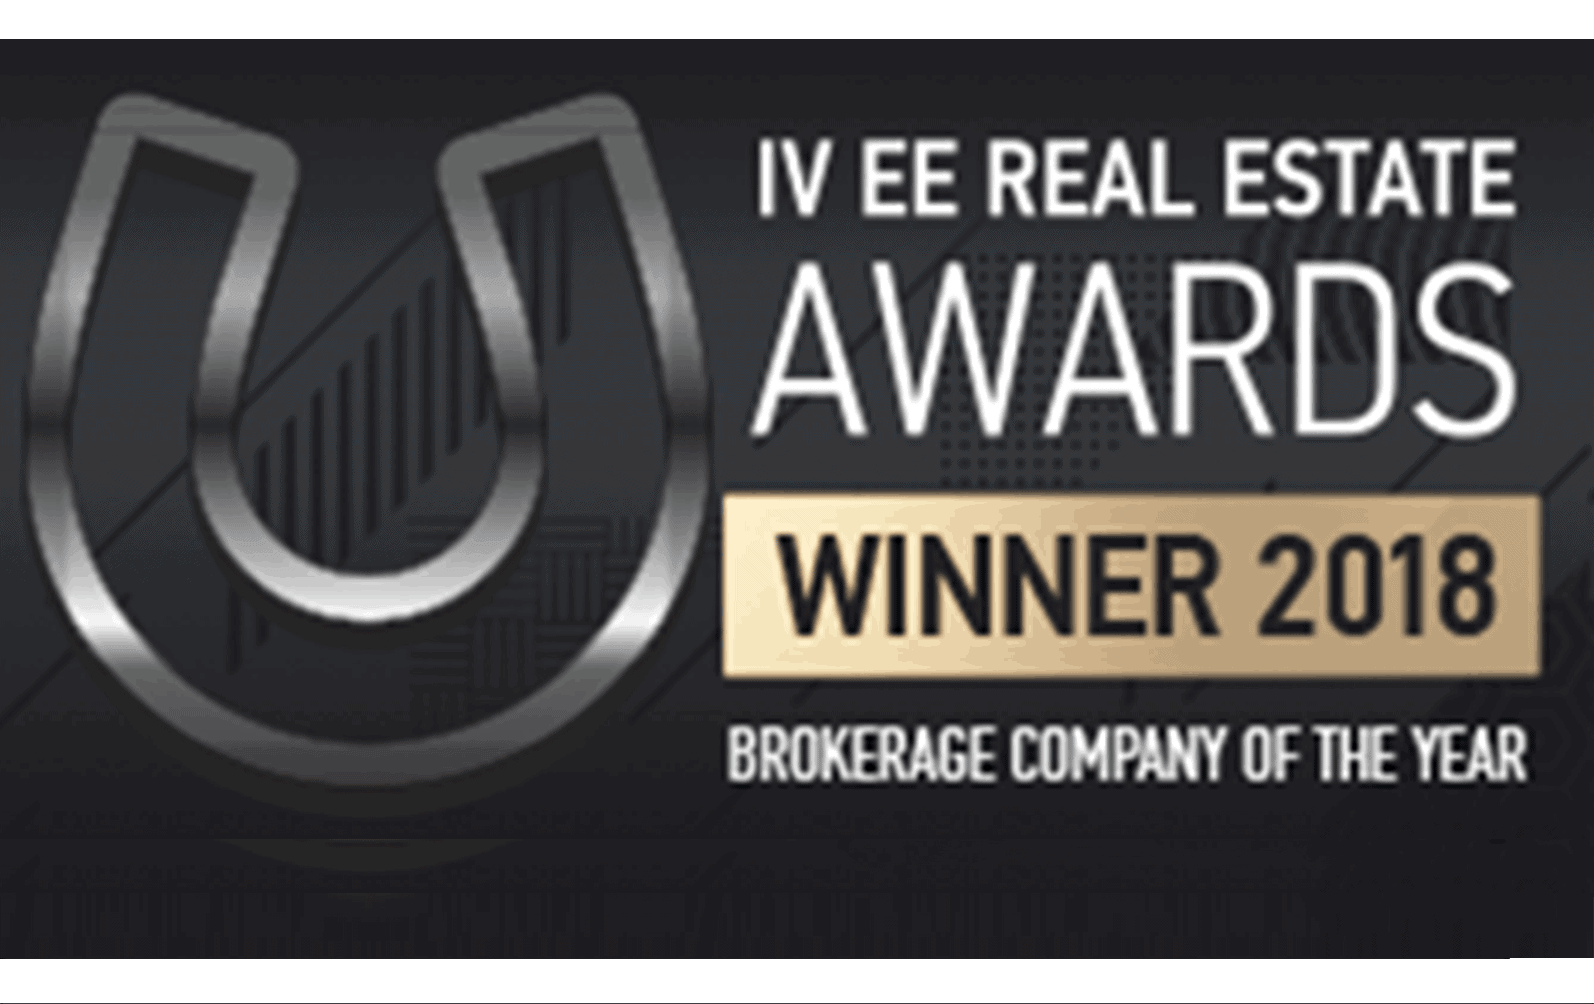 IV EEA Real Estate Awards 2018